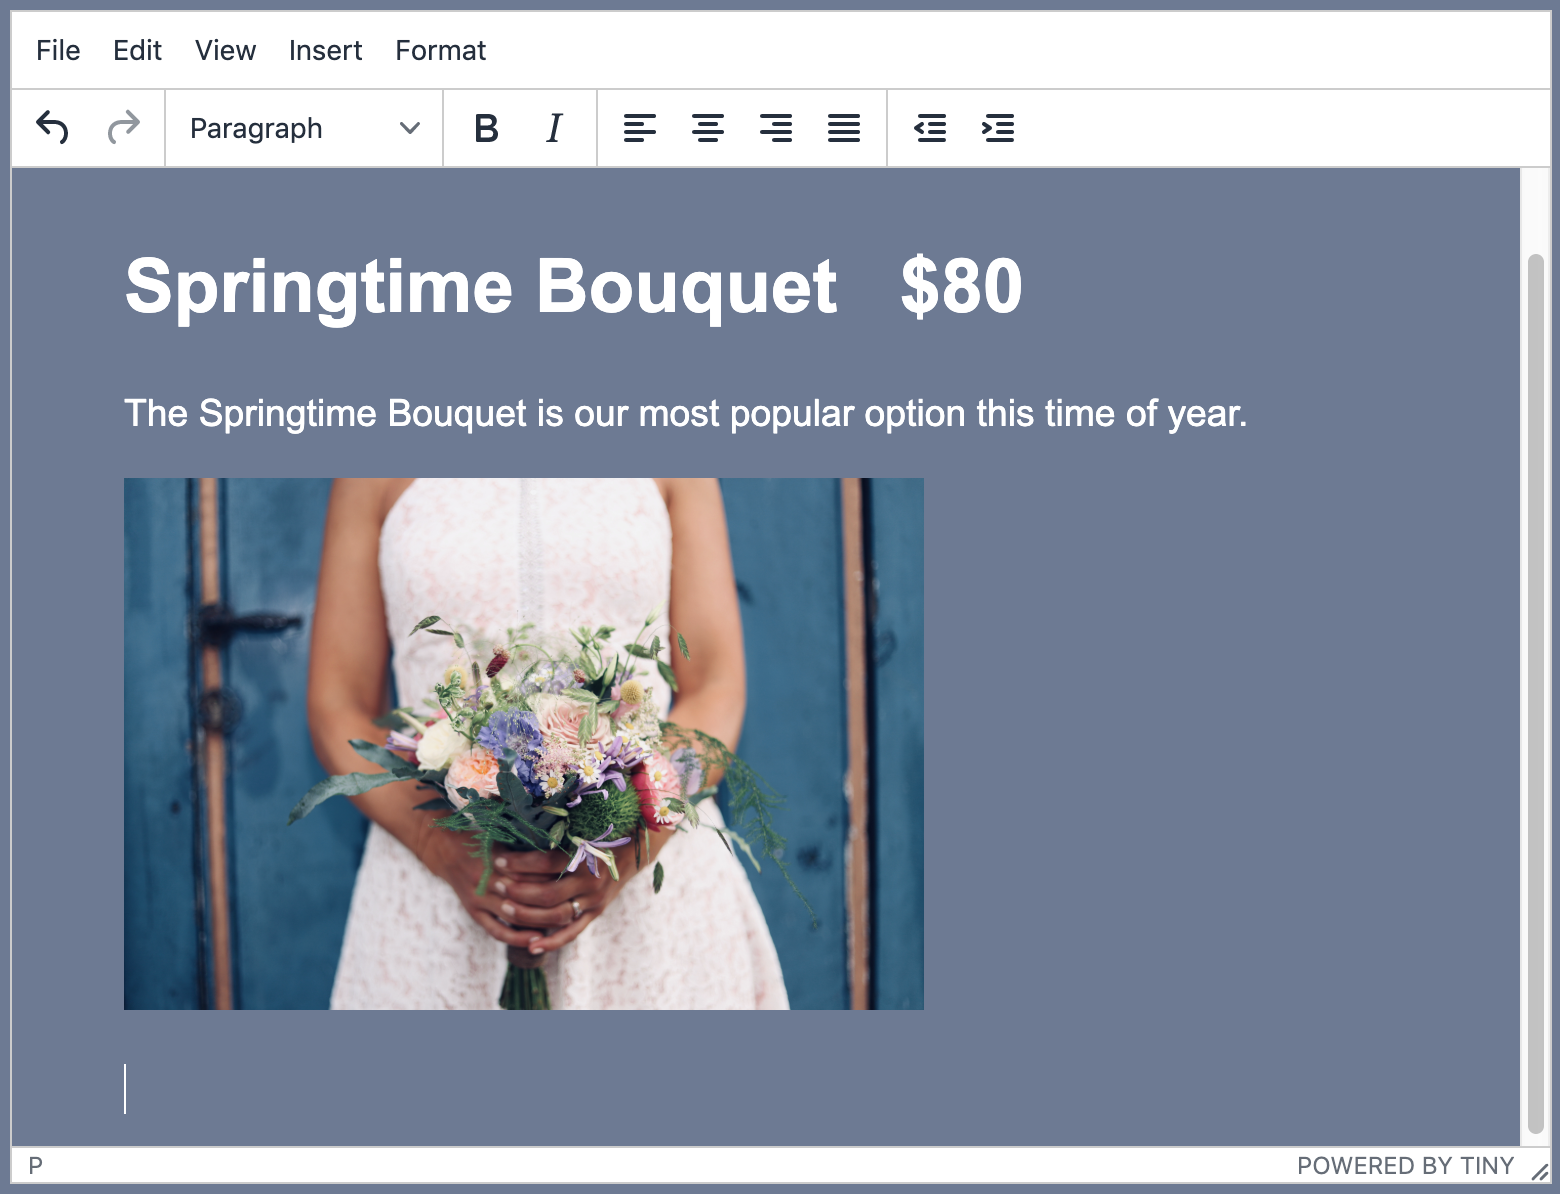 Screenshot of TinyMCE editor with an image of a wedding bouquet and non-cursive text reading